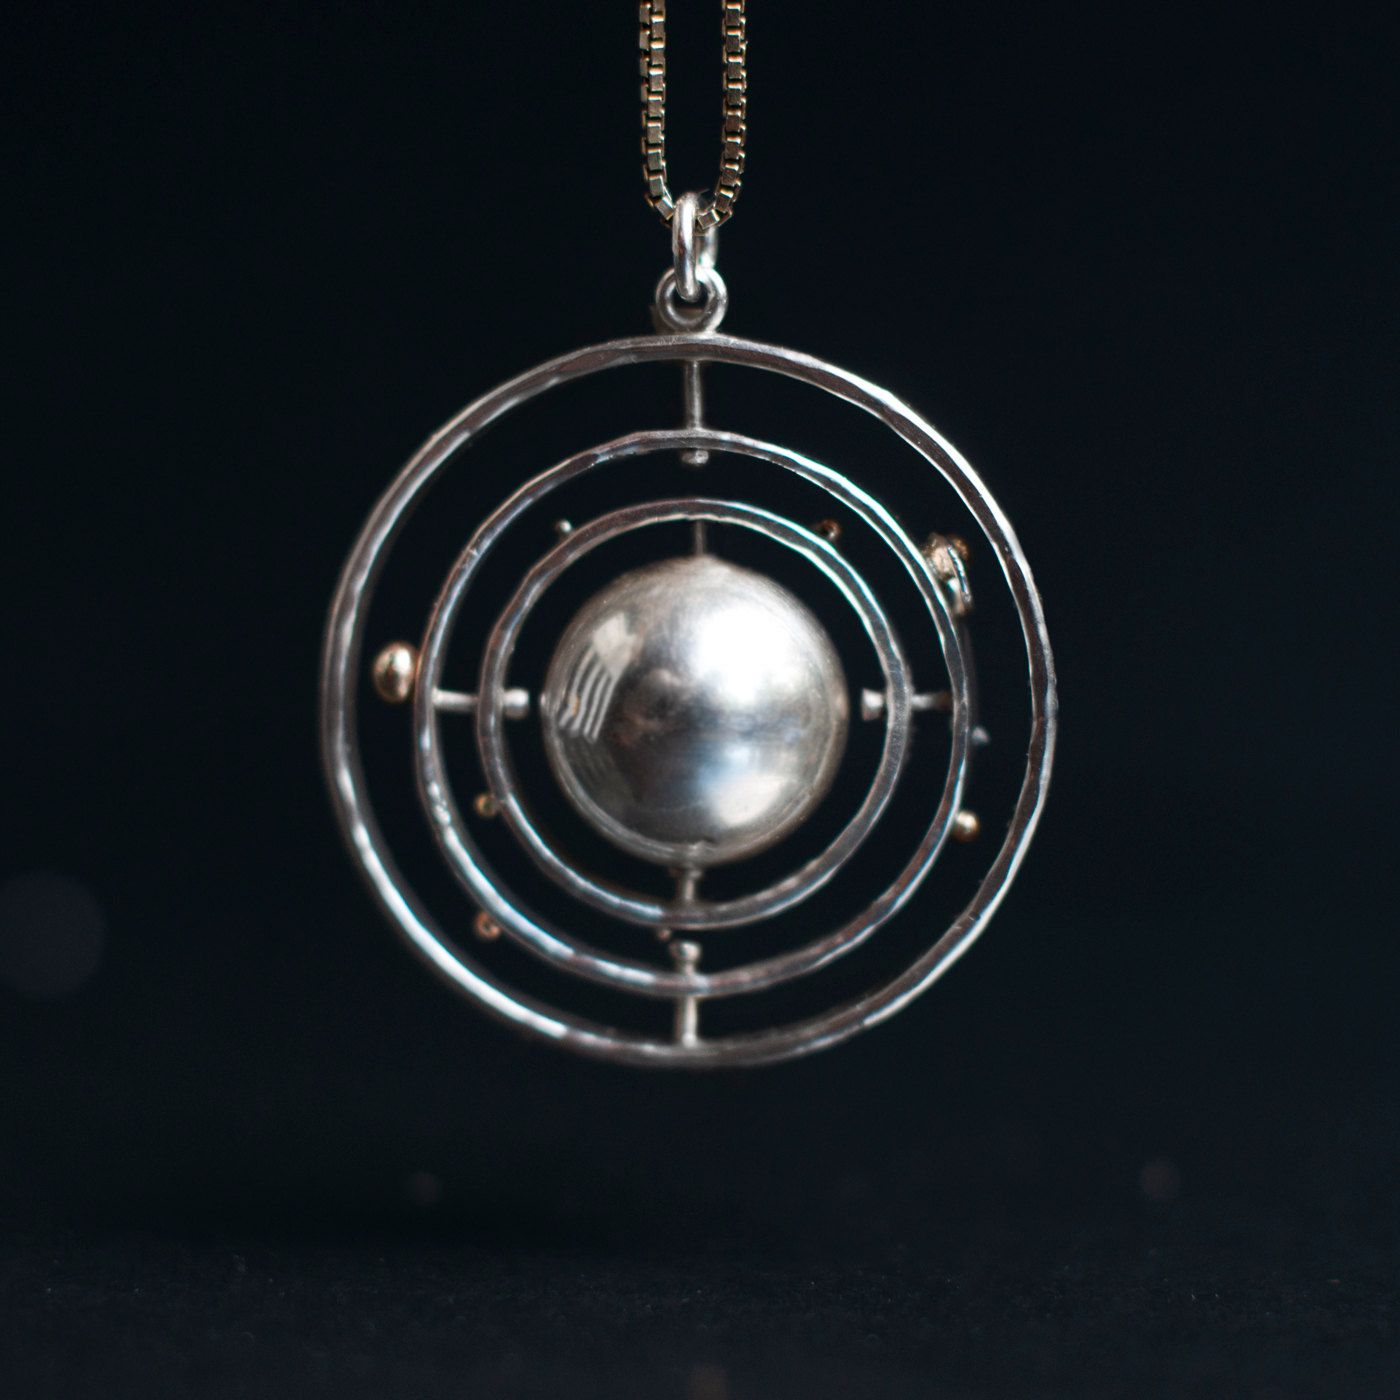 c4b3a1ac1f6 Kinetic solar system jewelry - Boing Boing